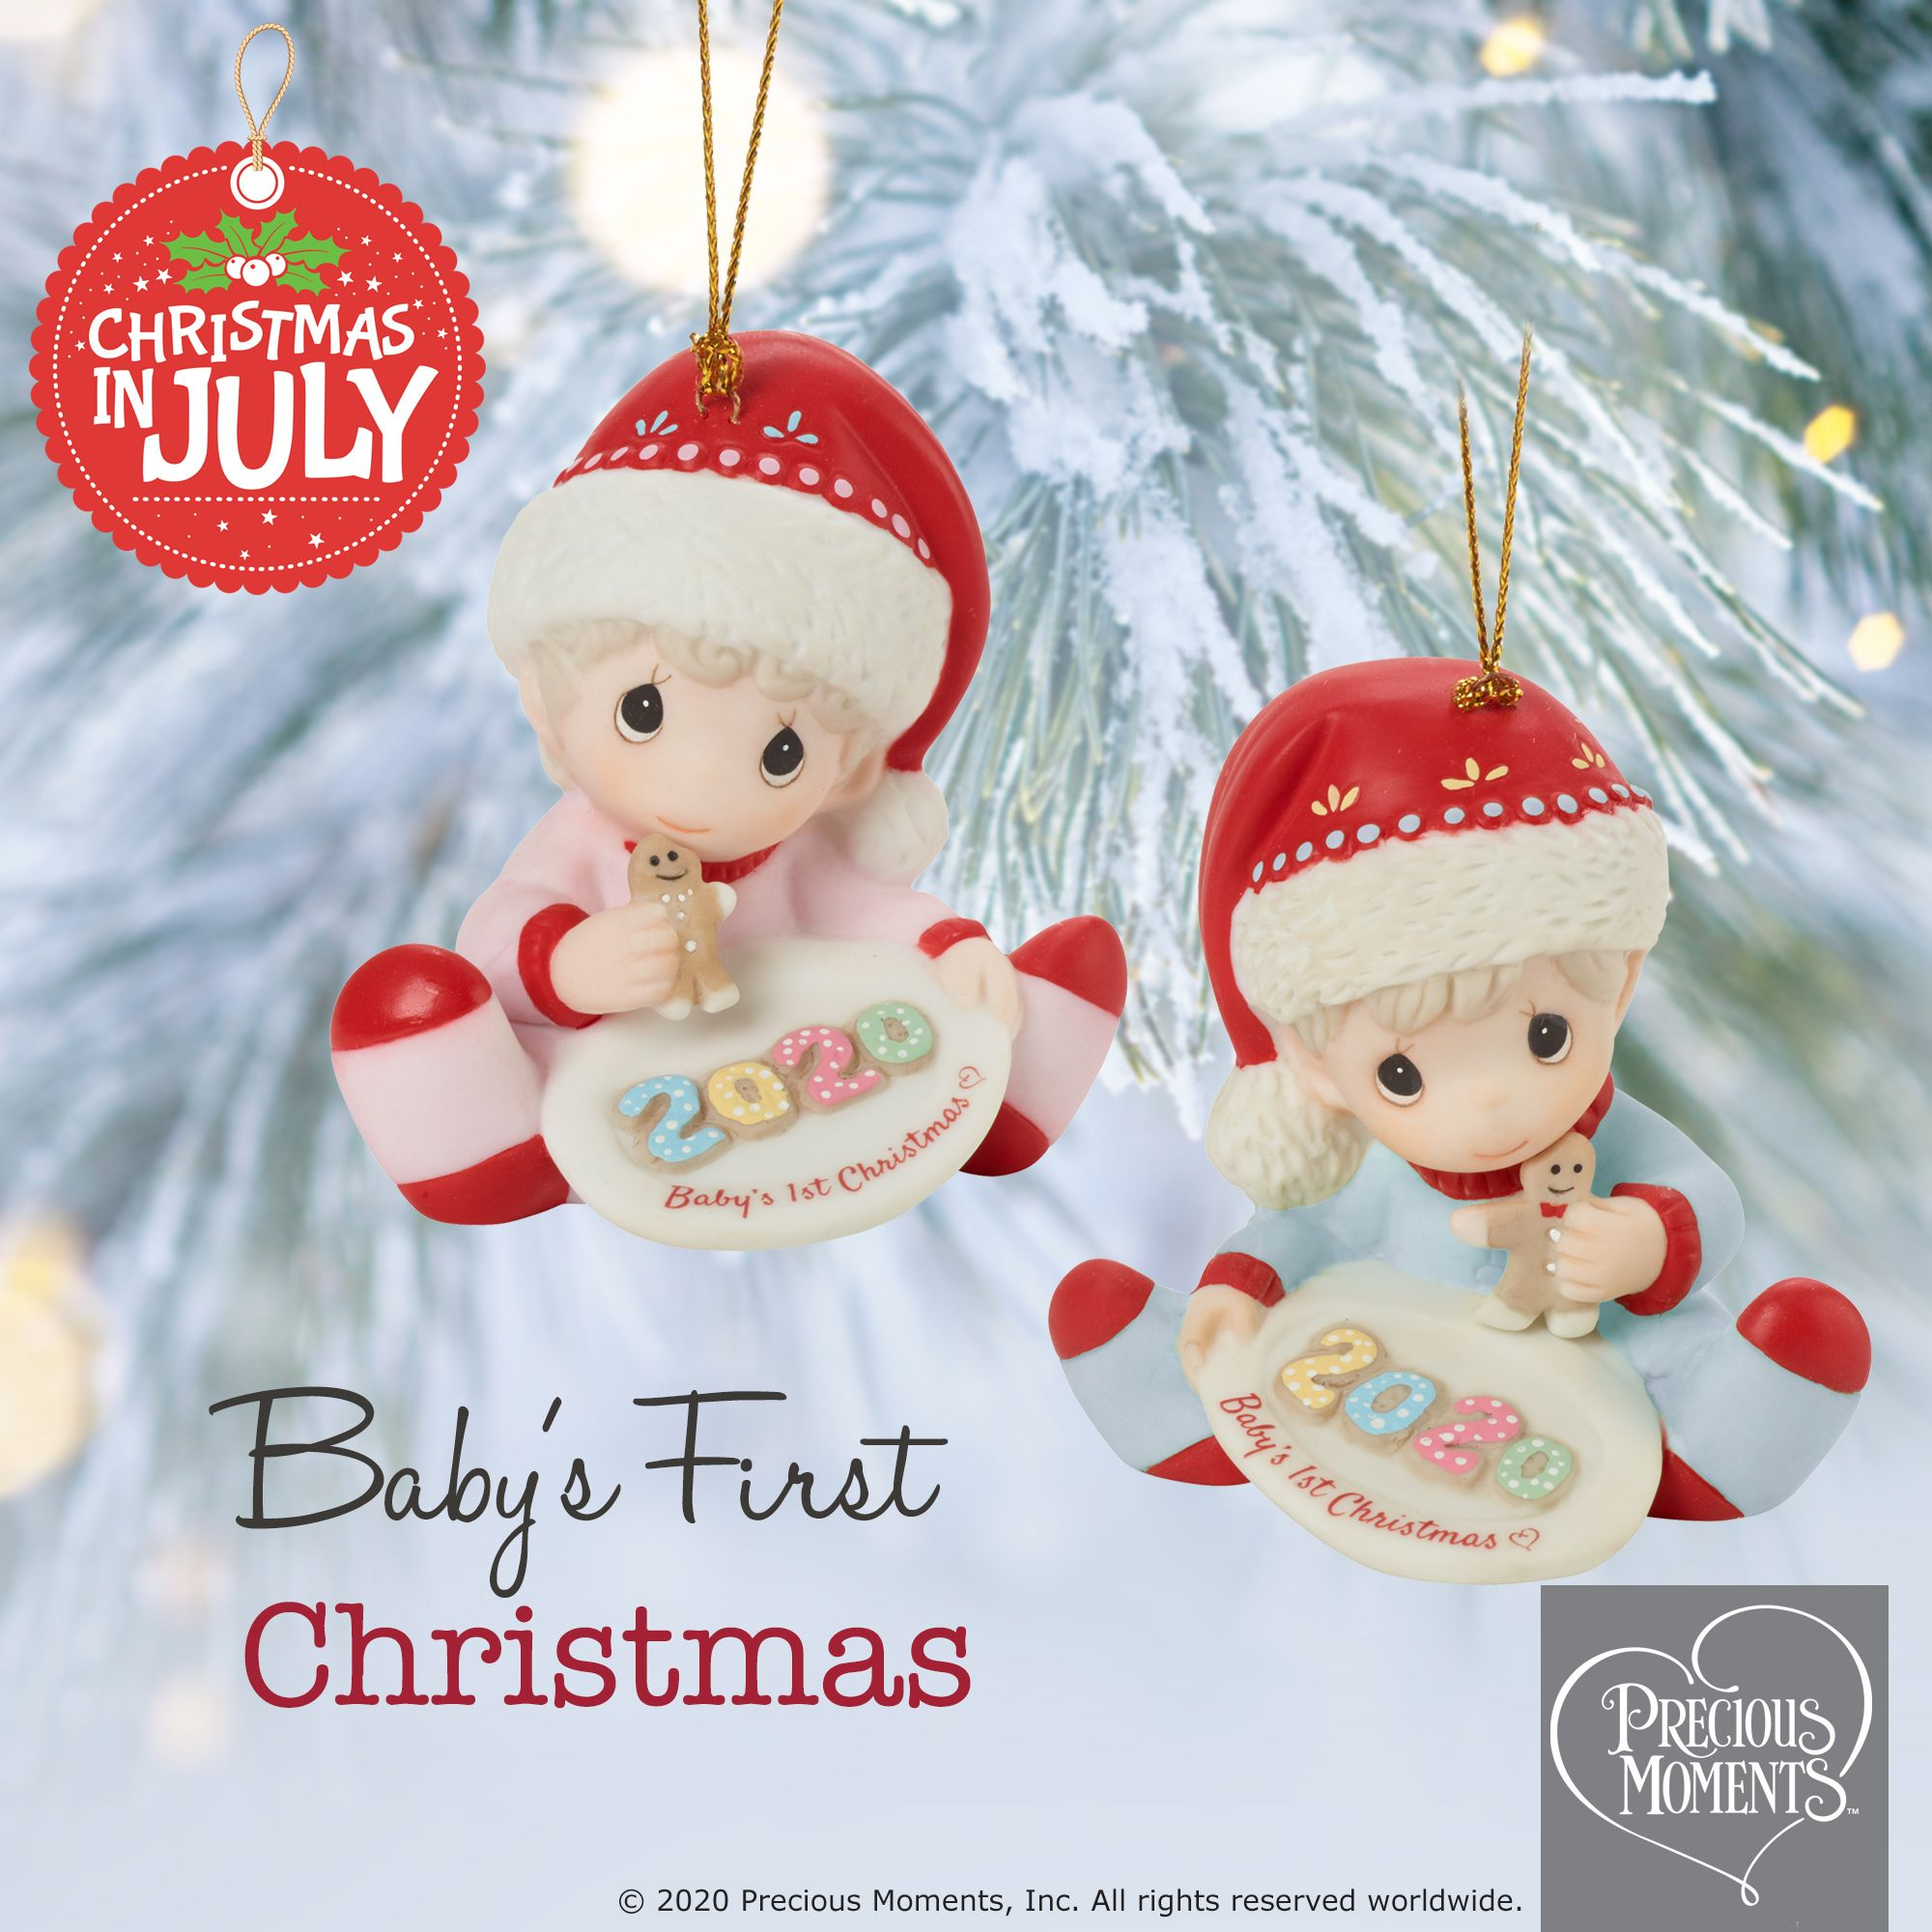 Precious Moments 2020 Christmas Ornaments Babys First Baby's 1st Christmas 2020 Dated Girl Ornament in 2020 | Thoughtful